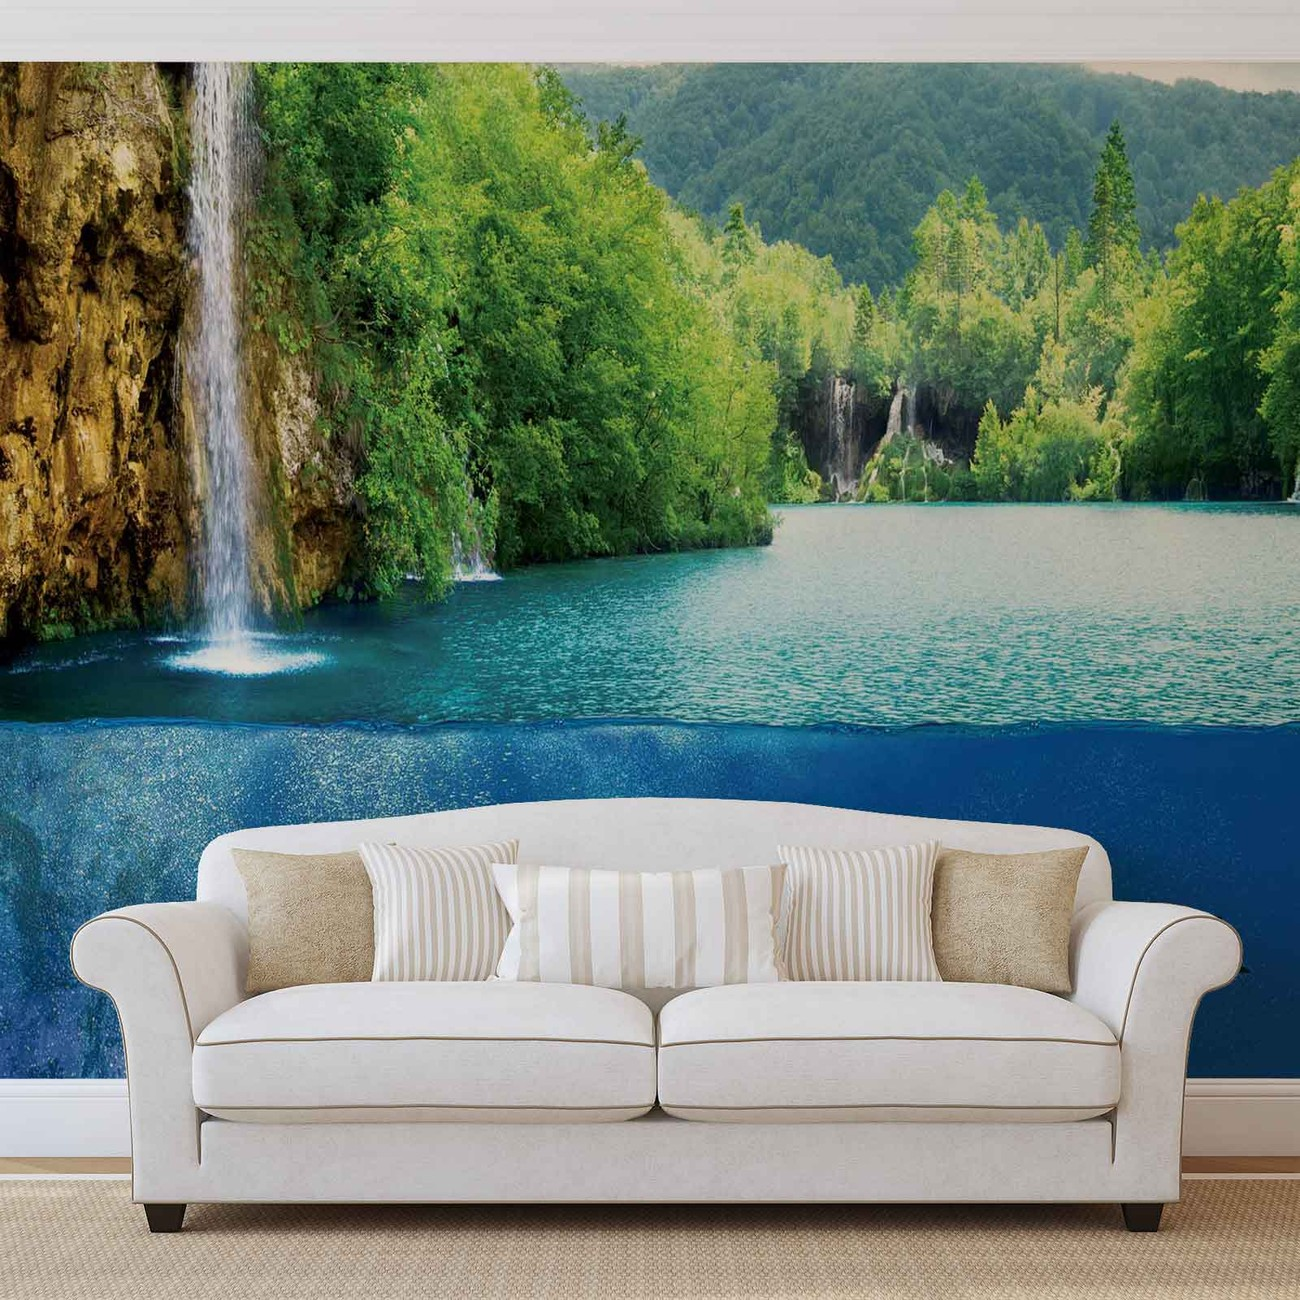 cascades mer nature dauphins poster mural papier peint acheter le sur. Black Bedroom Furniture Sets. Home Design Ideas